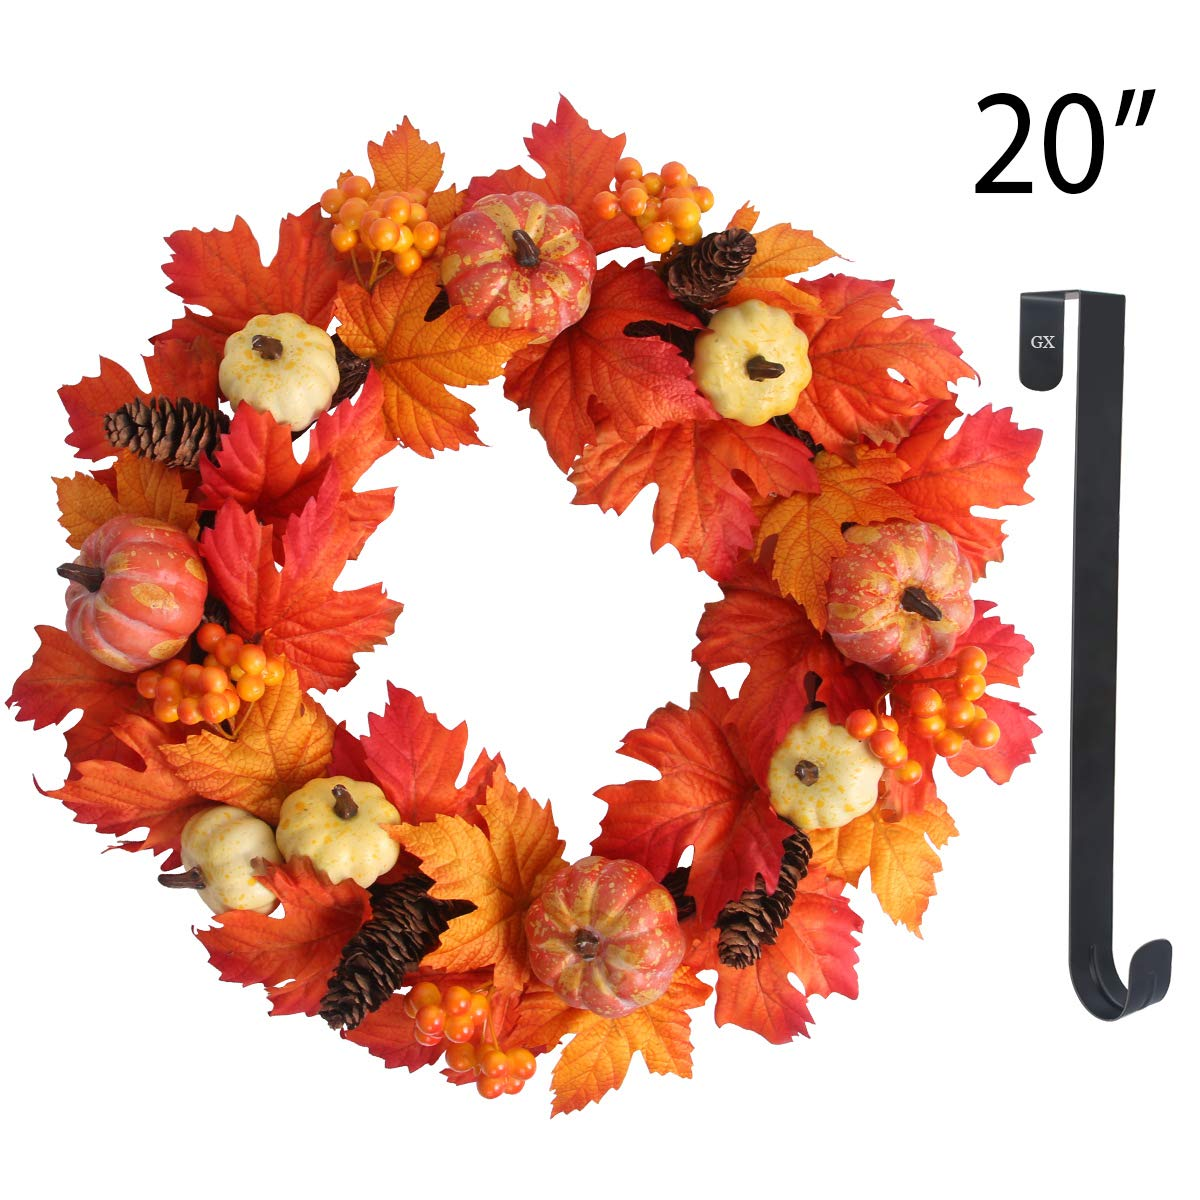 GameXcel Fall Wreaths for Front Door Maple Leaf Wreaths 20'' Fall Door Wreath Artificial Wreaths with 15'' Black Hanger Pumpkin Wreath Home Decor for Window, Halloween, Thanksgiving by GameXcel